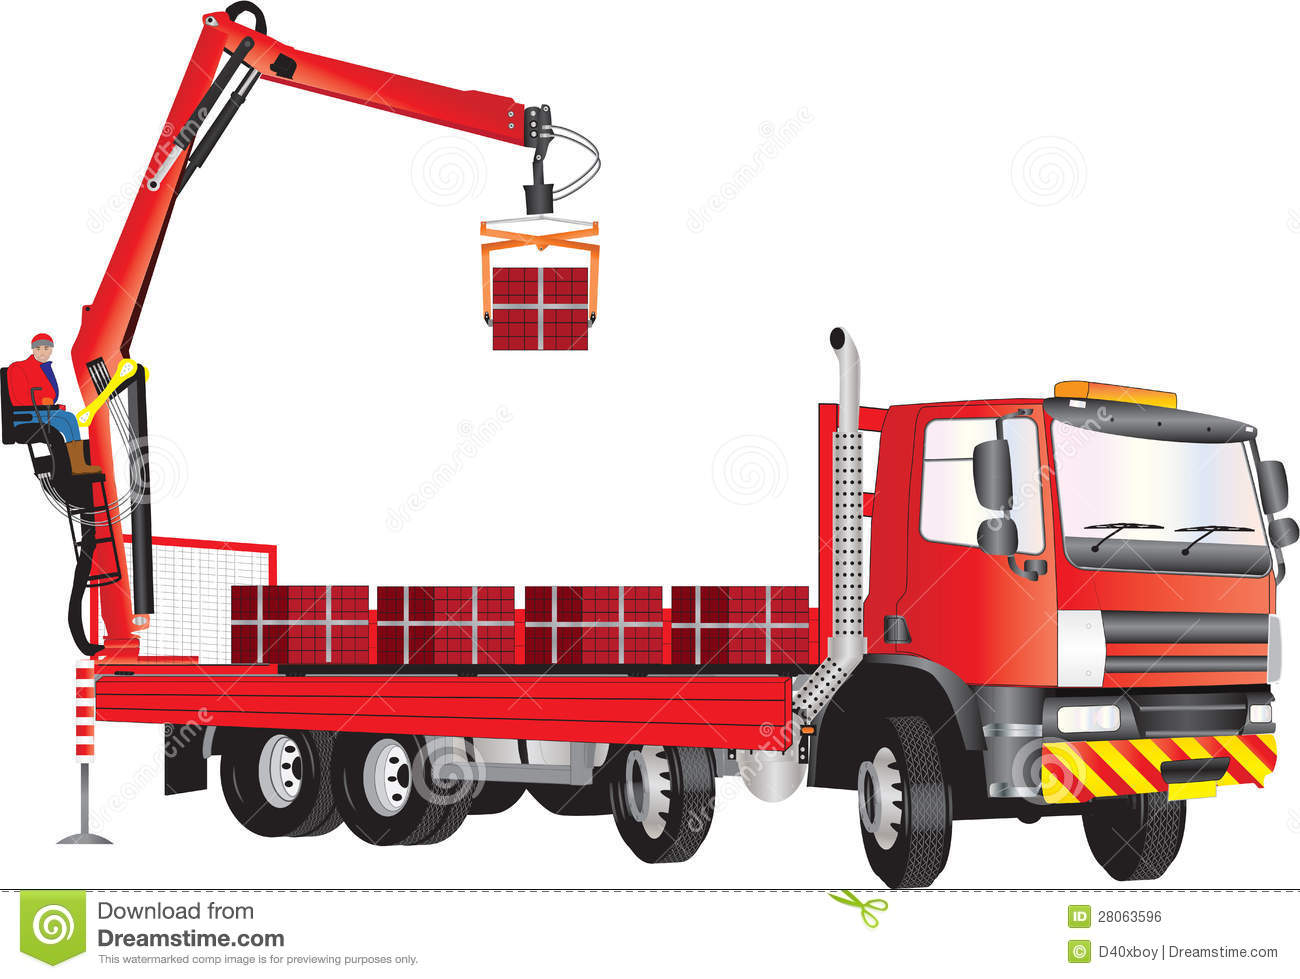 red crane truck stock photo image of freight consignment 28063596. Black Bedroom Furniture Sets. Home Design Ideas